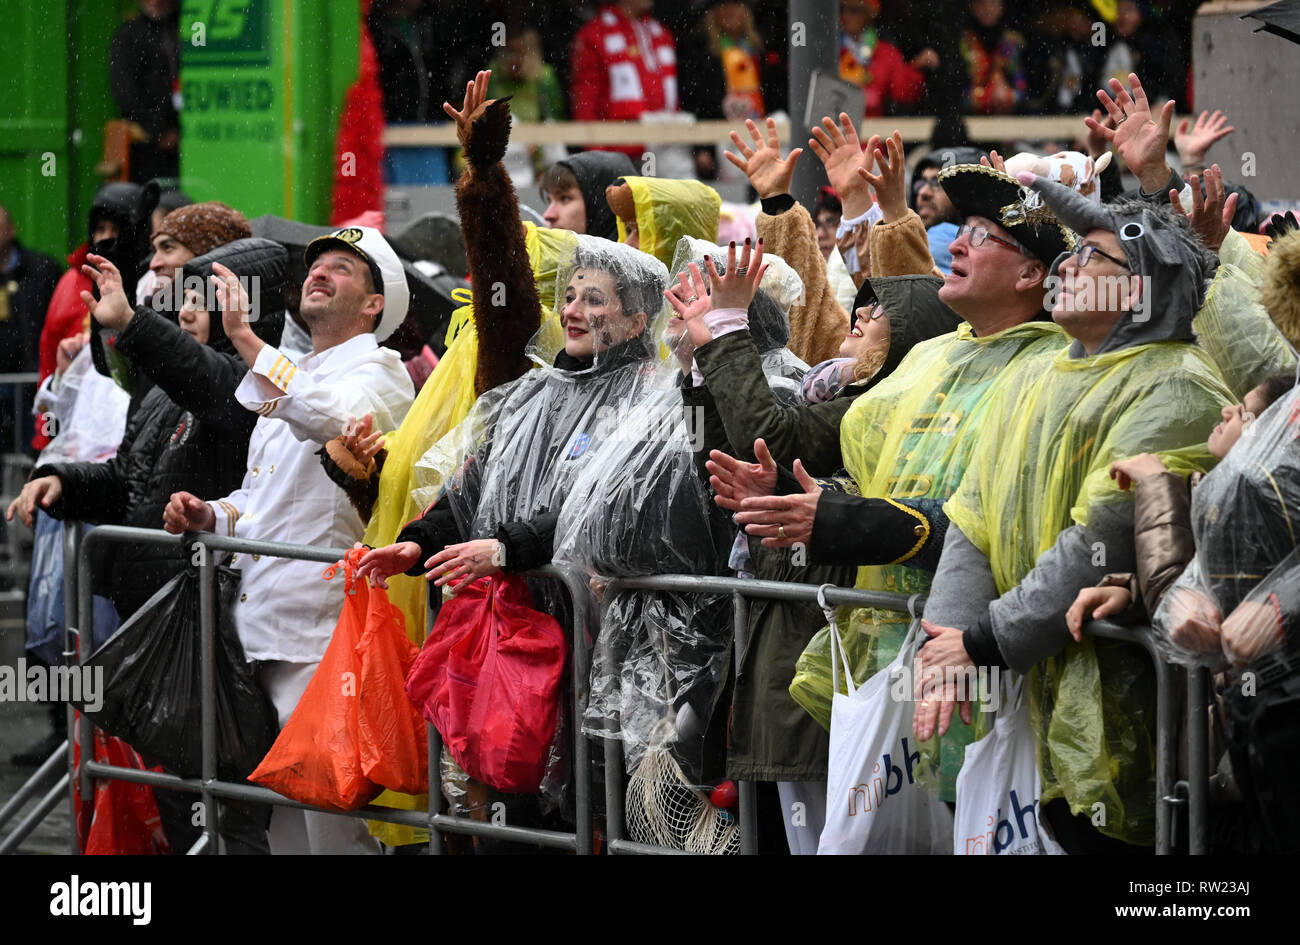 Cologne, Germany. 04th Mar, 2019. Cologne, Germany. 04th Mar, 2019.  Spectators protect themselves on the edge of the Rose Monday procession with umbrellas and plastic ponchos against a shower. With the Rose Monday processions, the Rhineland street carnival reaches its climax. Photo: Henning Kaiser/dpa Credit: dpa picture alliance/Alamy Live News - Stock Image